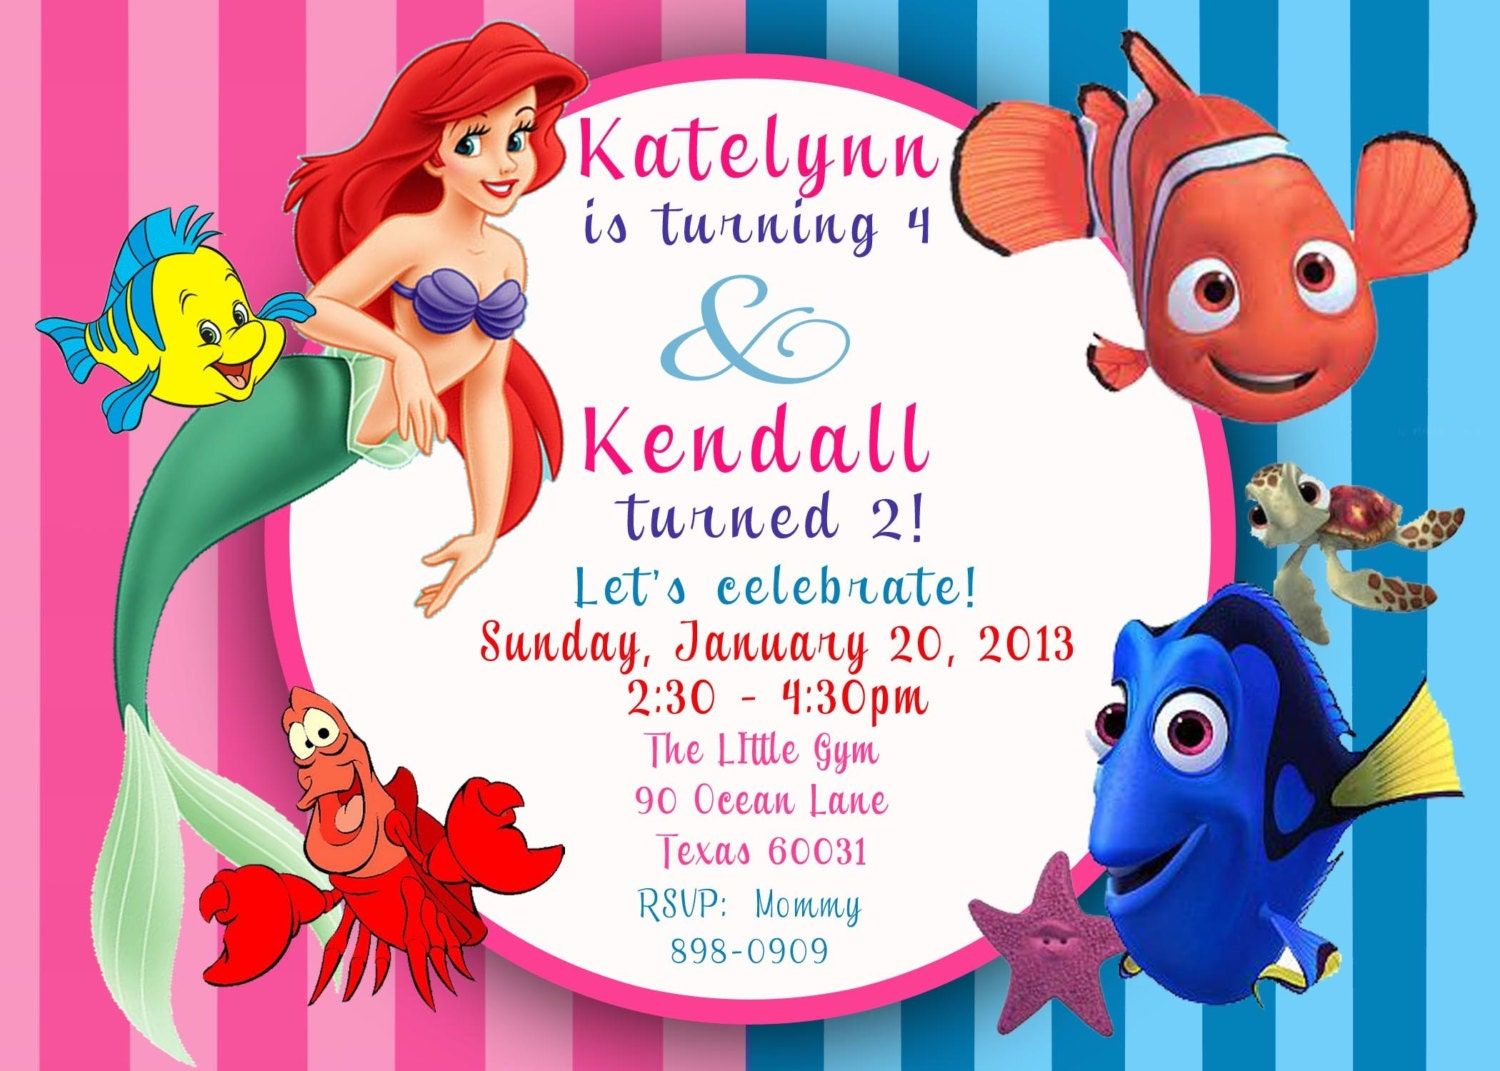 CUSTOM PHOTO Invitation Ariel The Little Mermaid & Finding